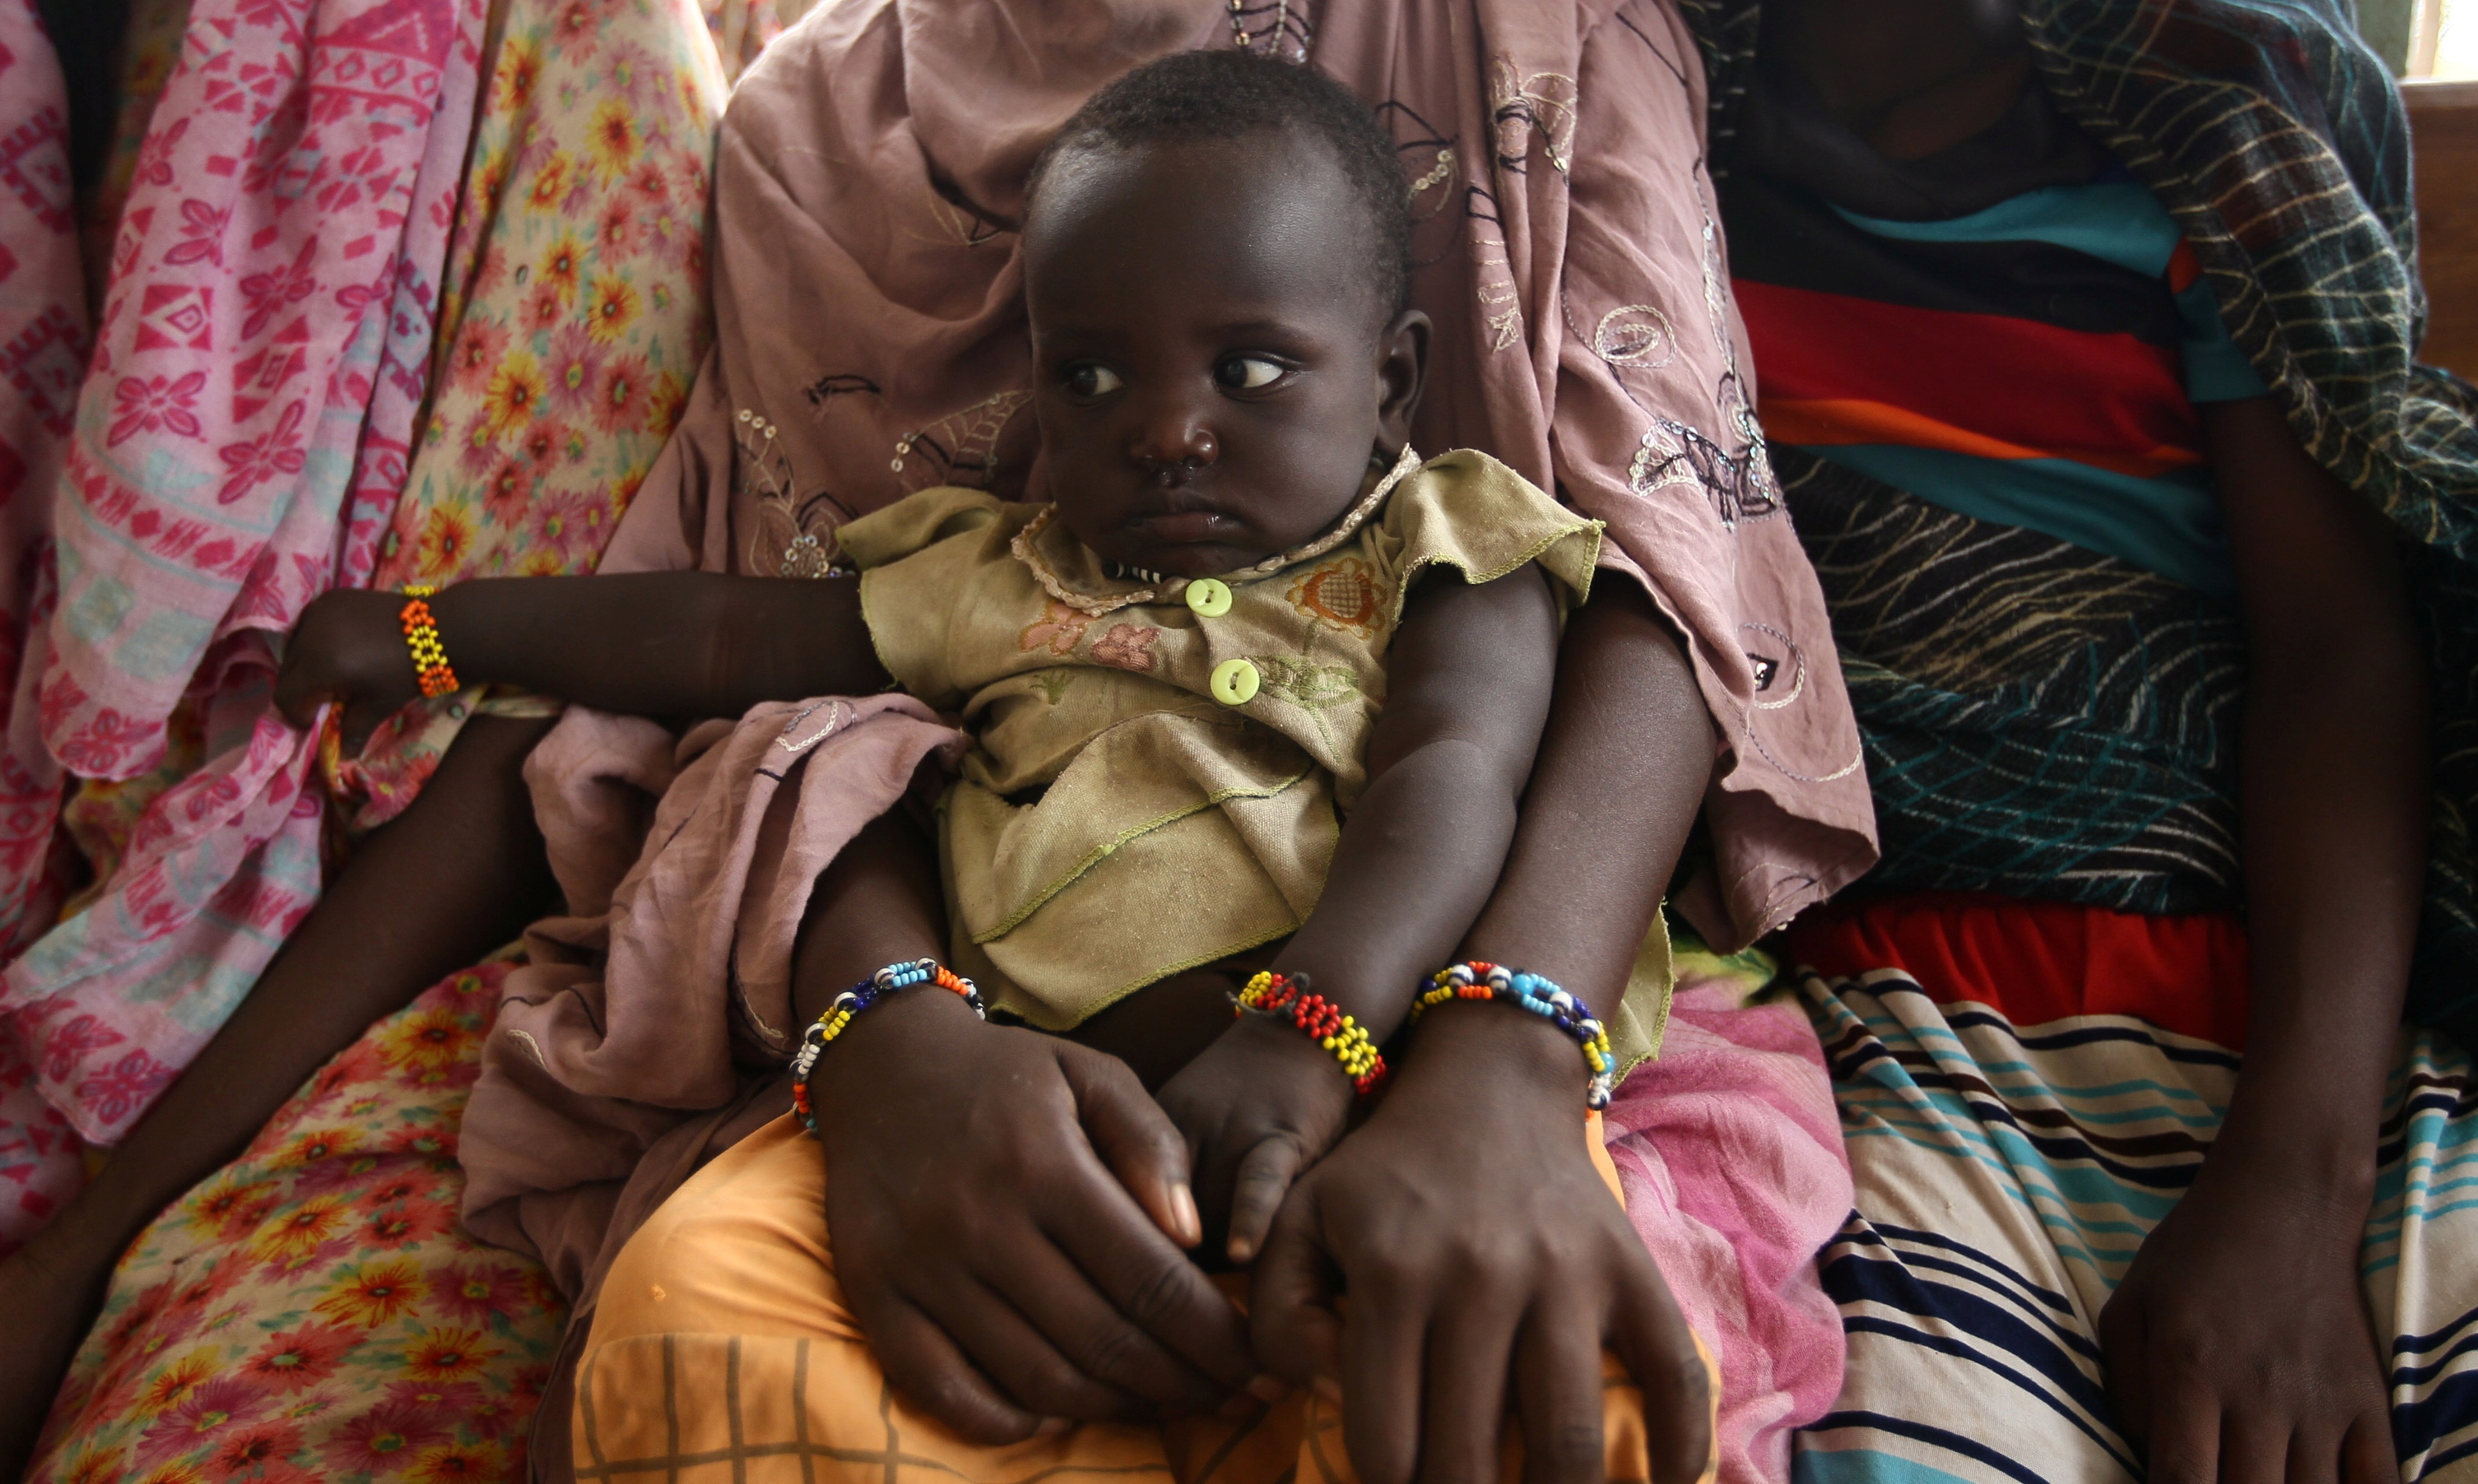 A woman holds her child as they wait to receive treatment in Kobo health center in Kobo village, one of the drought stricken areas of Oromia region, in Ethiopia, April 28, 2016.